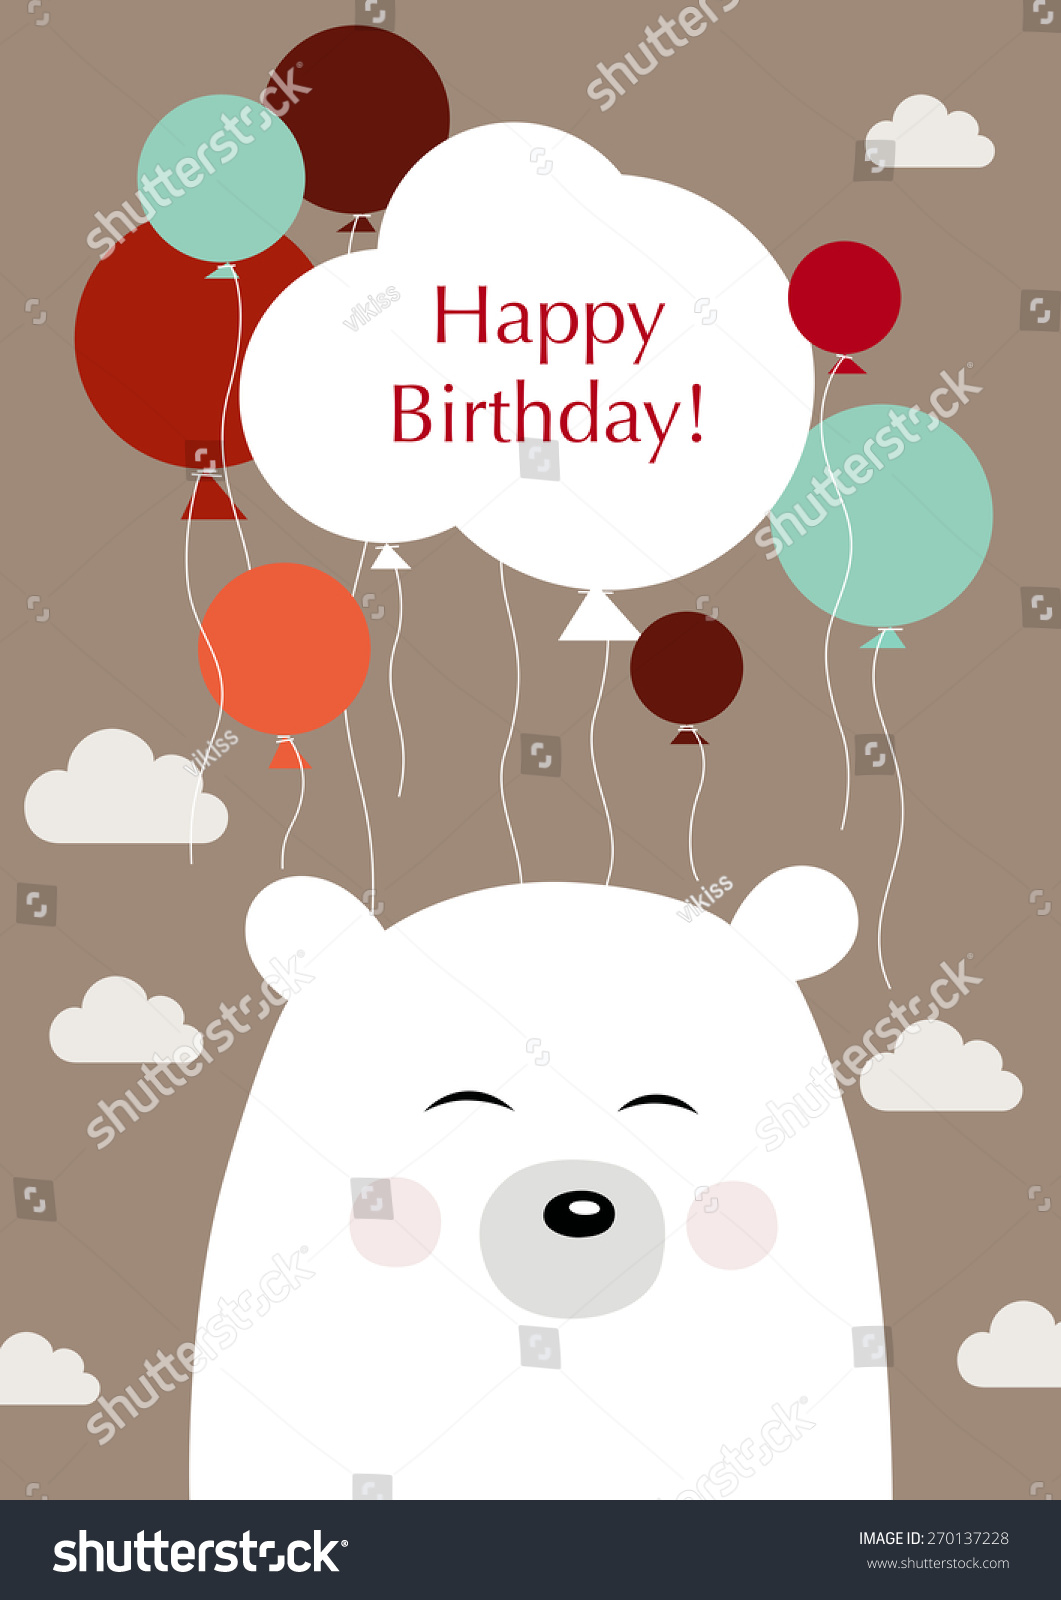 Happy Birthday Illustration Birthday Greetings Bear Stock Vector